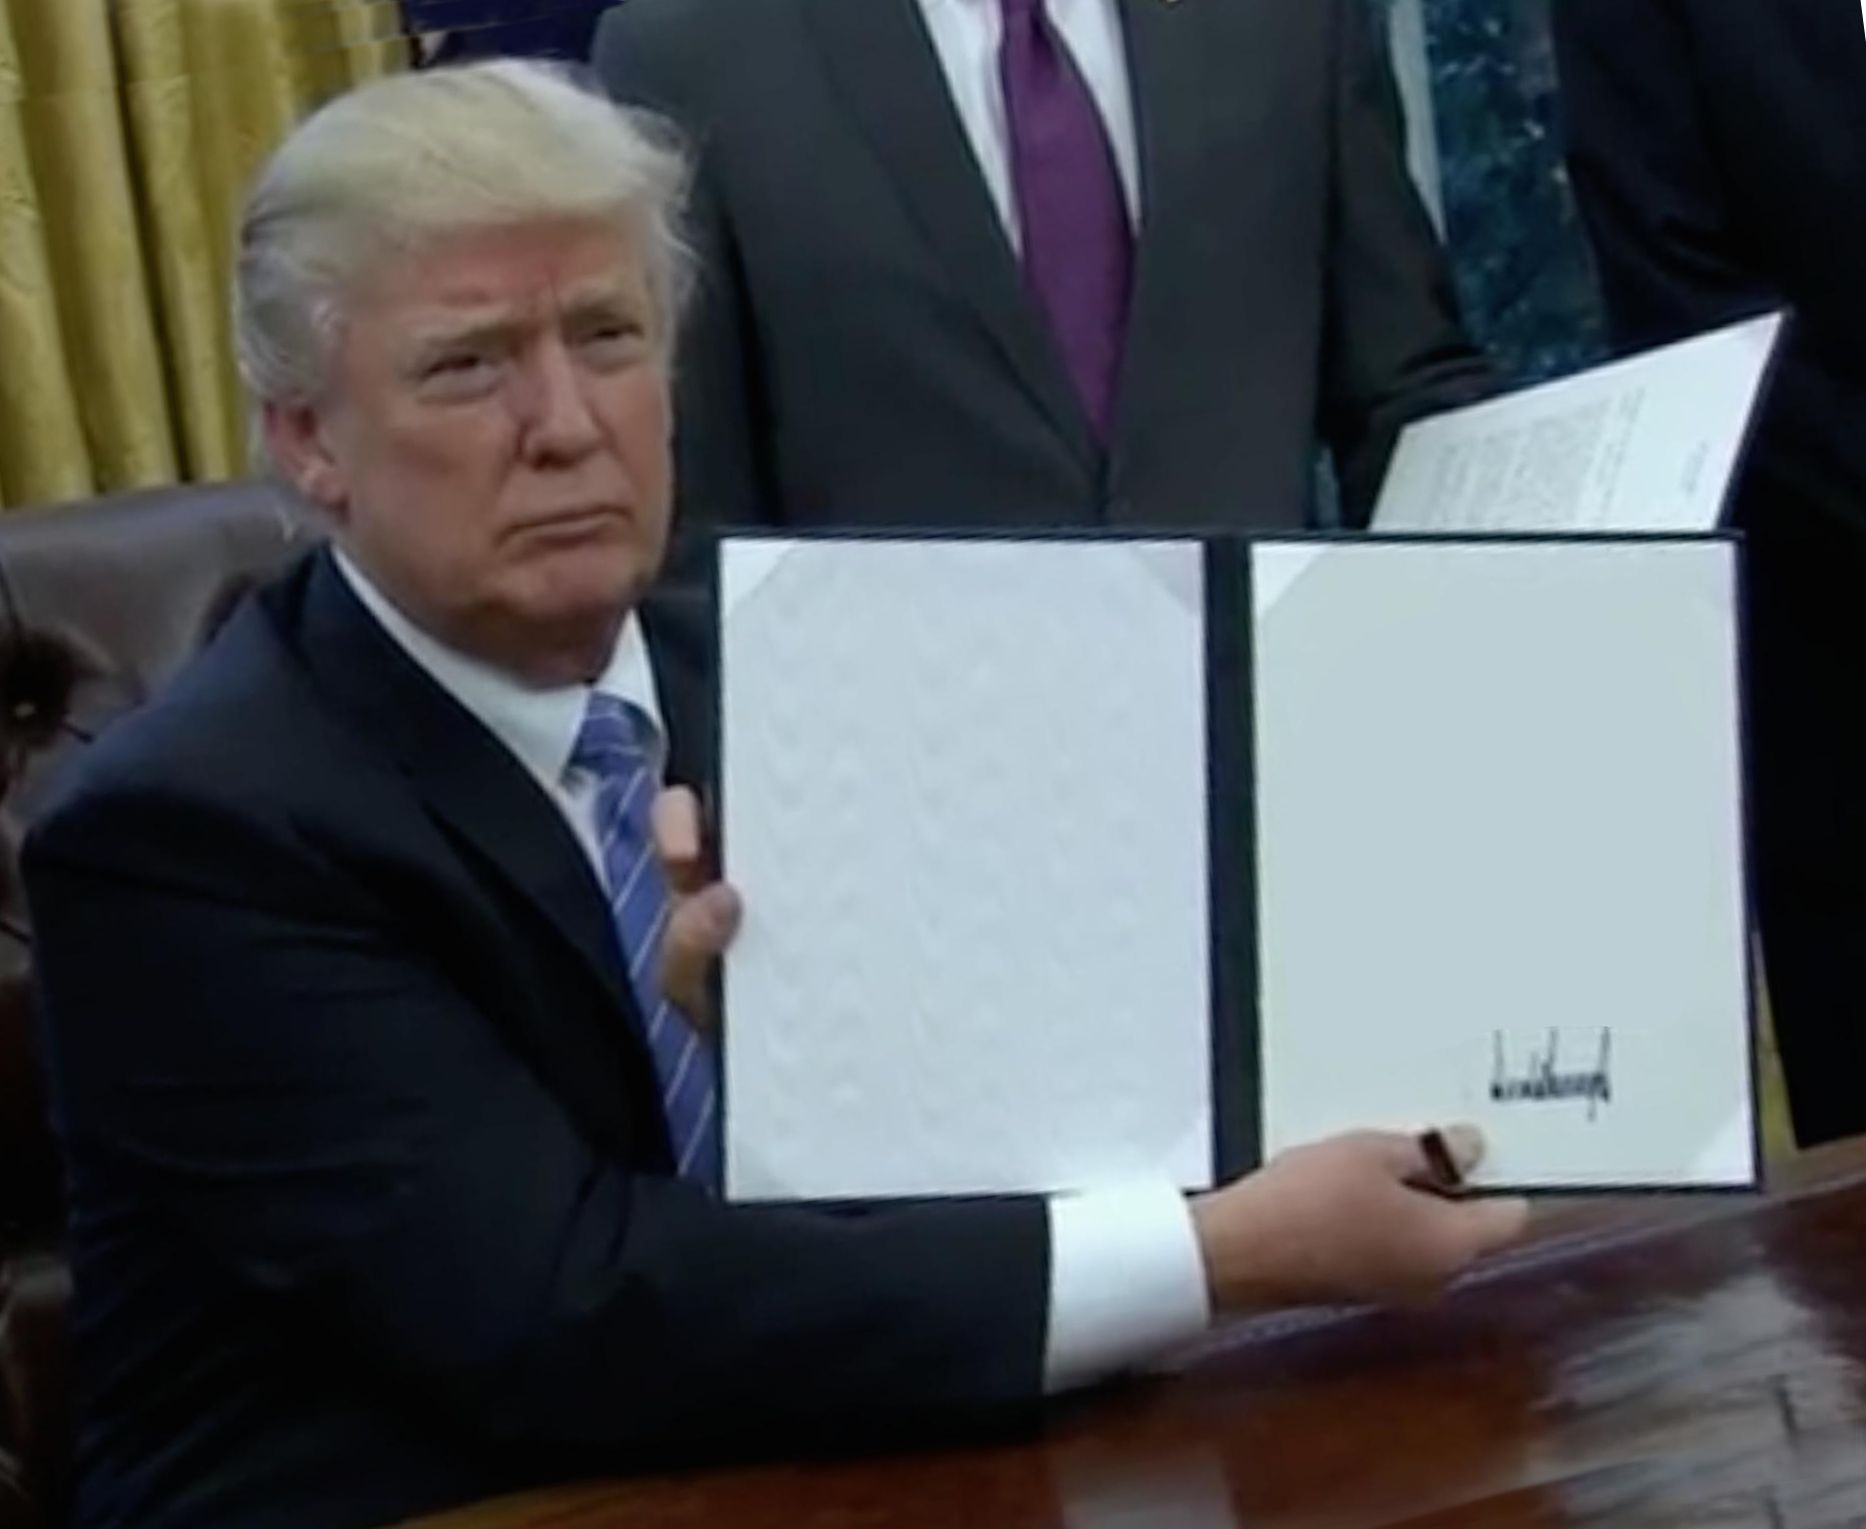 High Quality Trump Bill Signing Blank Meme Template